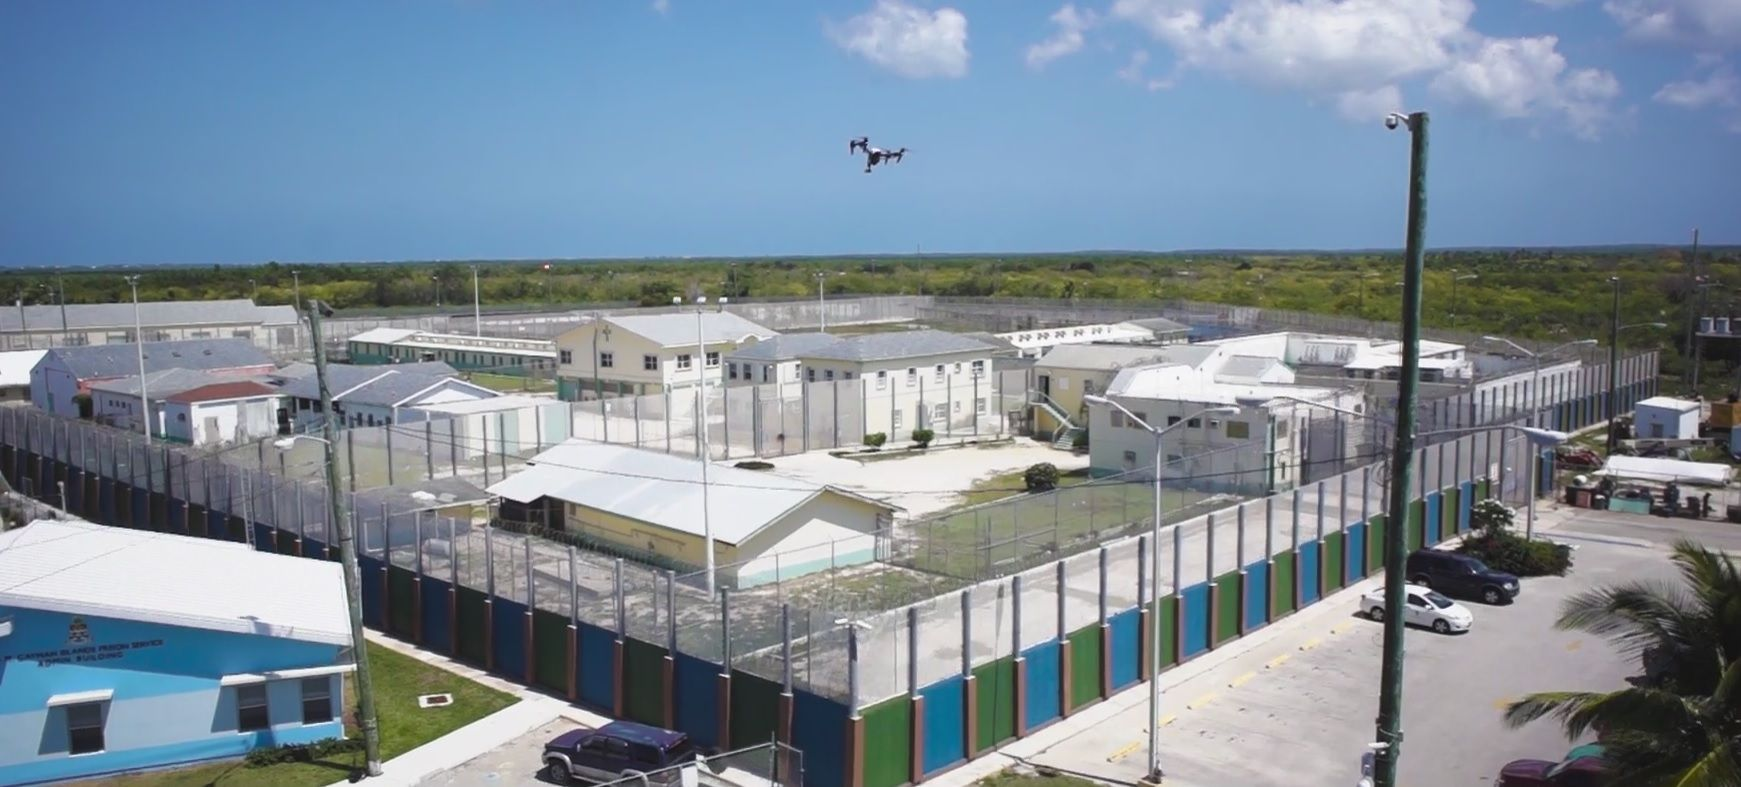 drones drugs prison cayman islands